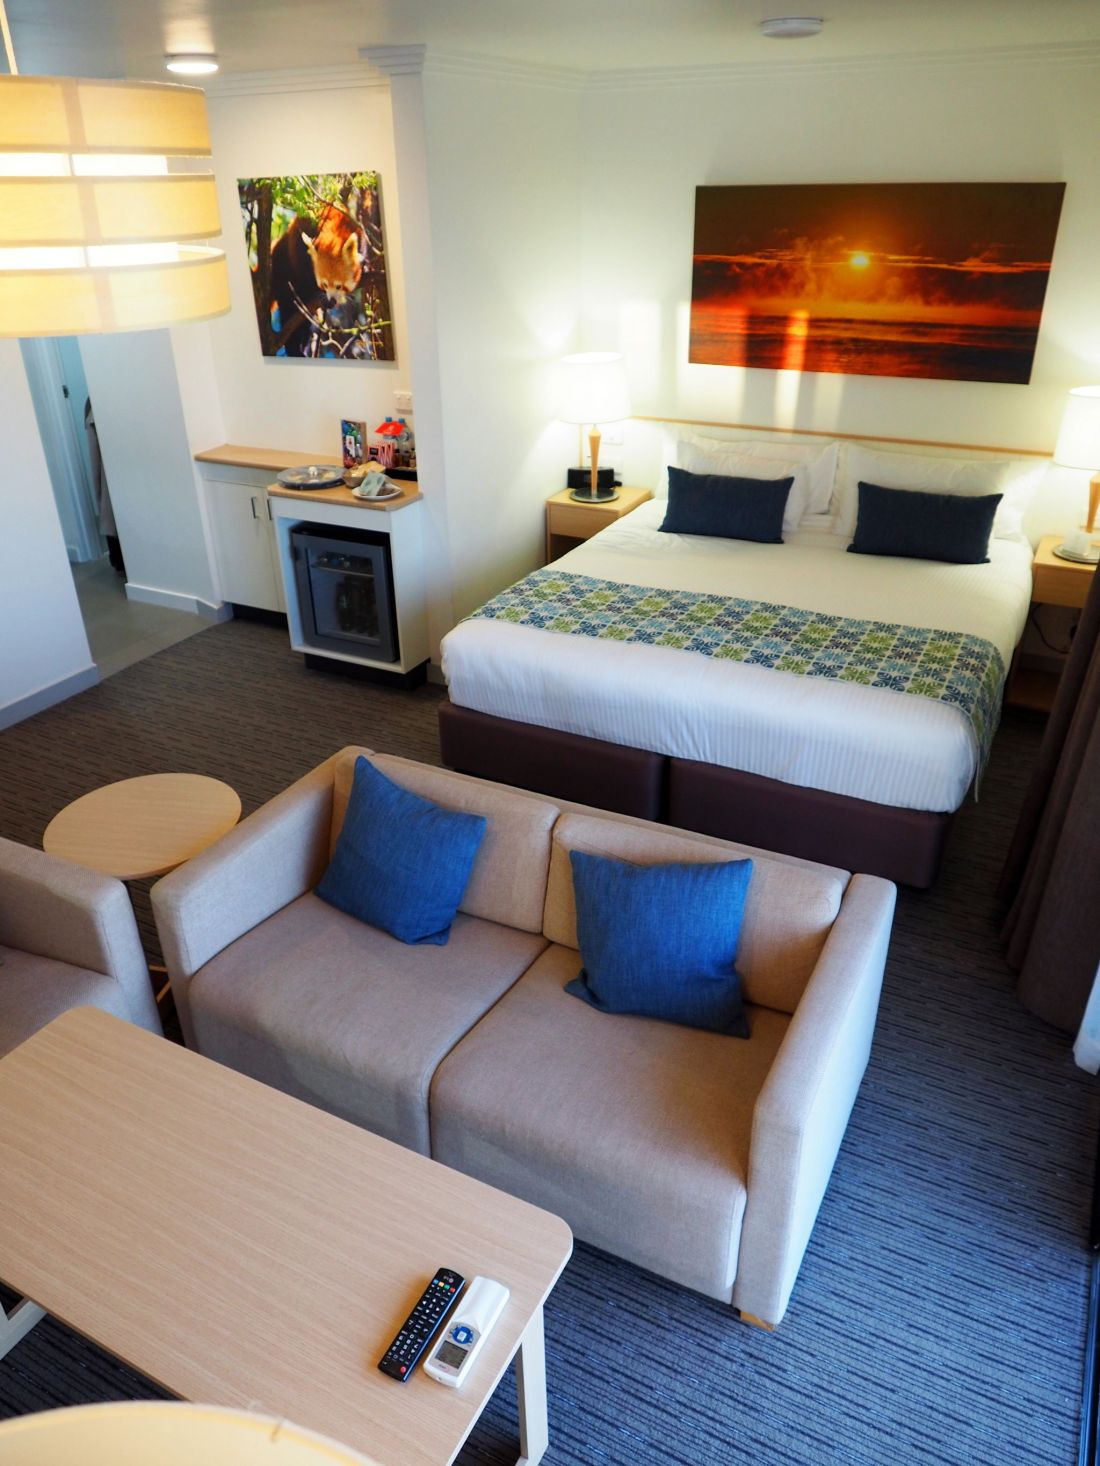 Bed and lounge in room at Sails Port Macquarie